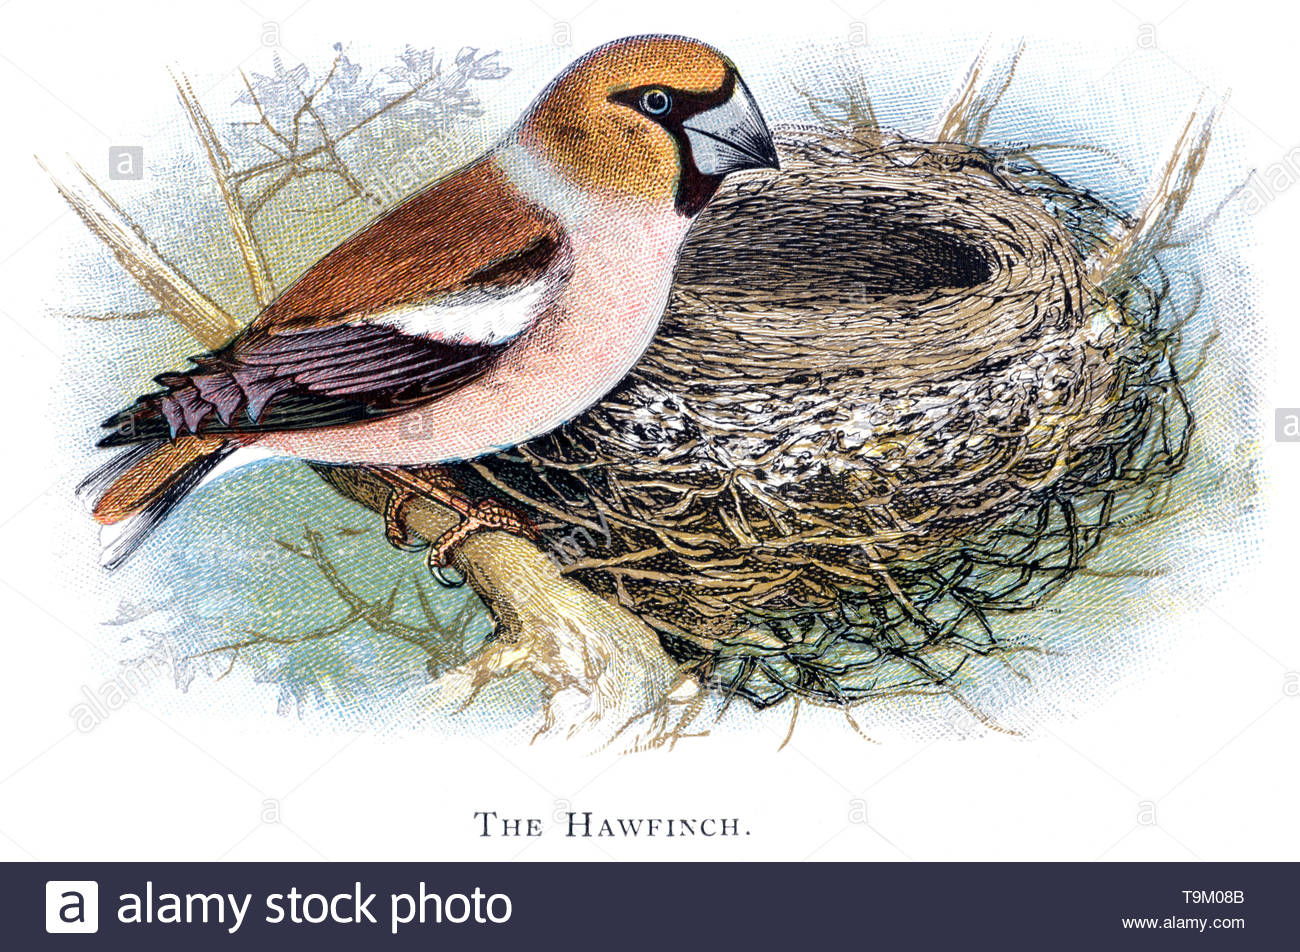 Hawfinch (Coccothraustes coccothraustes) at nest, vintage illustration published in 1898 - Stock Image